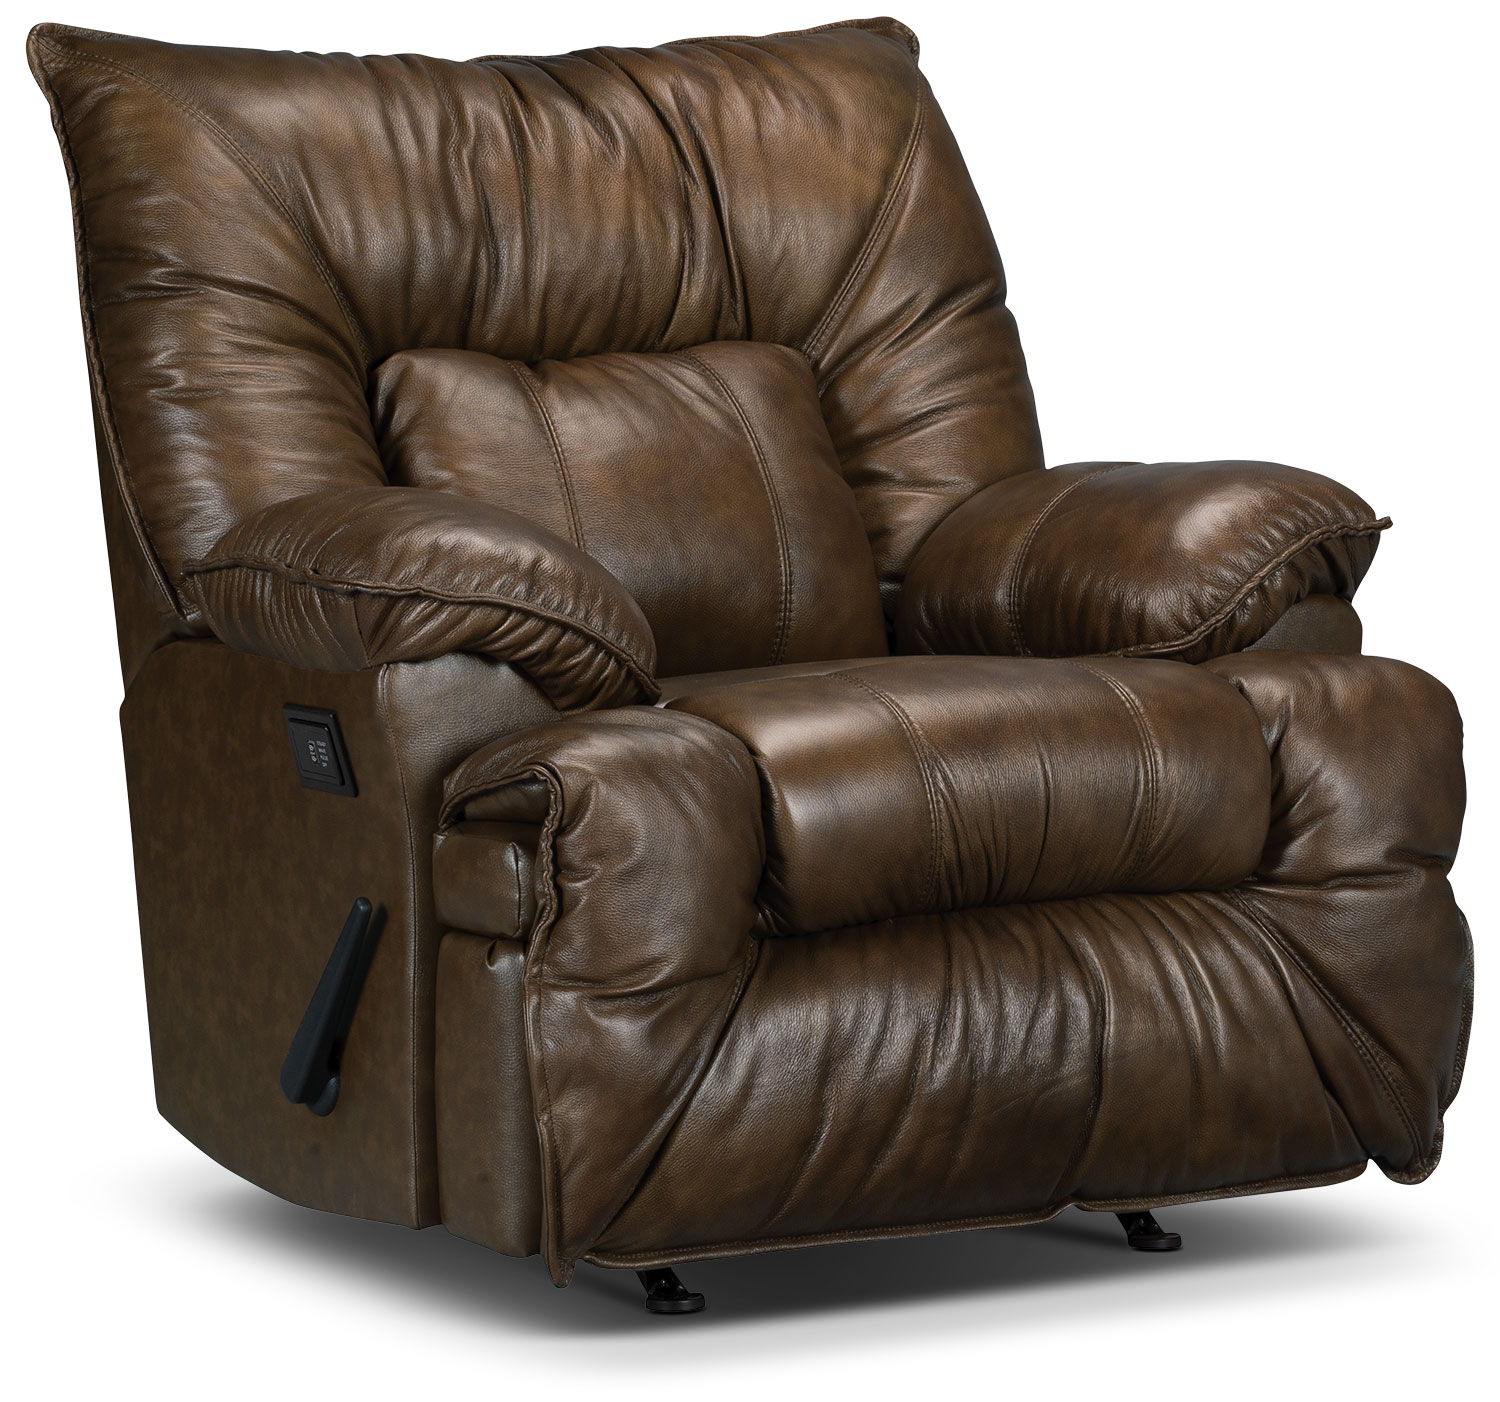 Living Room Furniture - Designed2B Recliner 7726 Leather-Look Fabric Massage Chair - Walnut